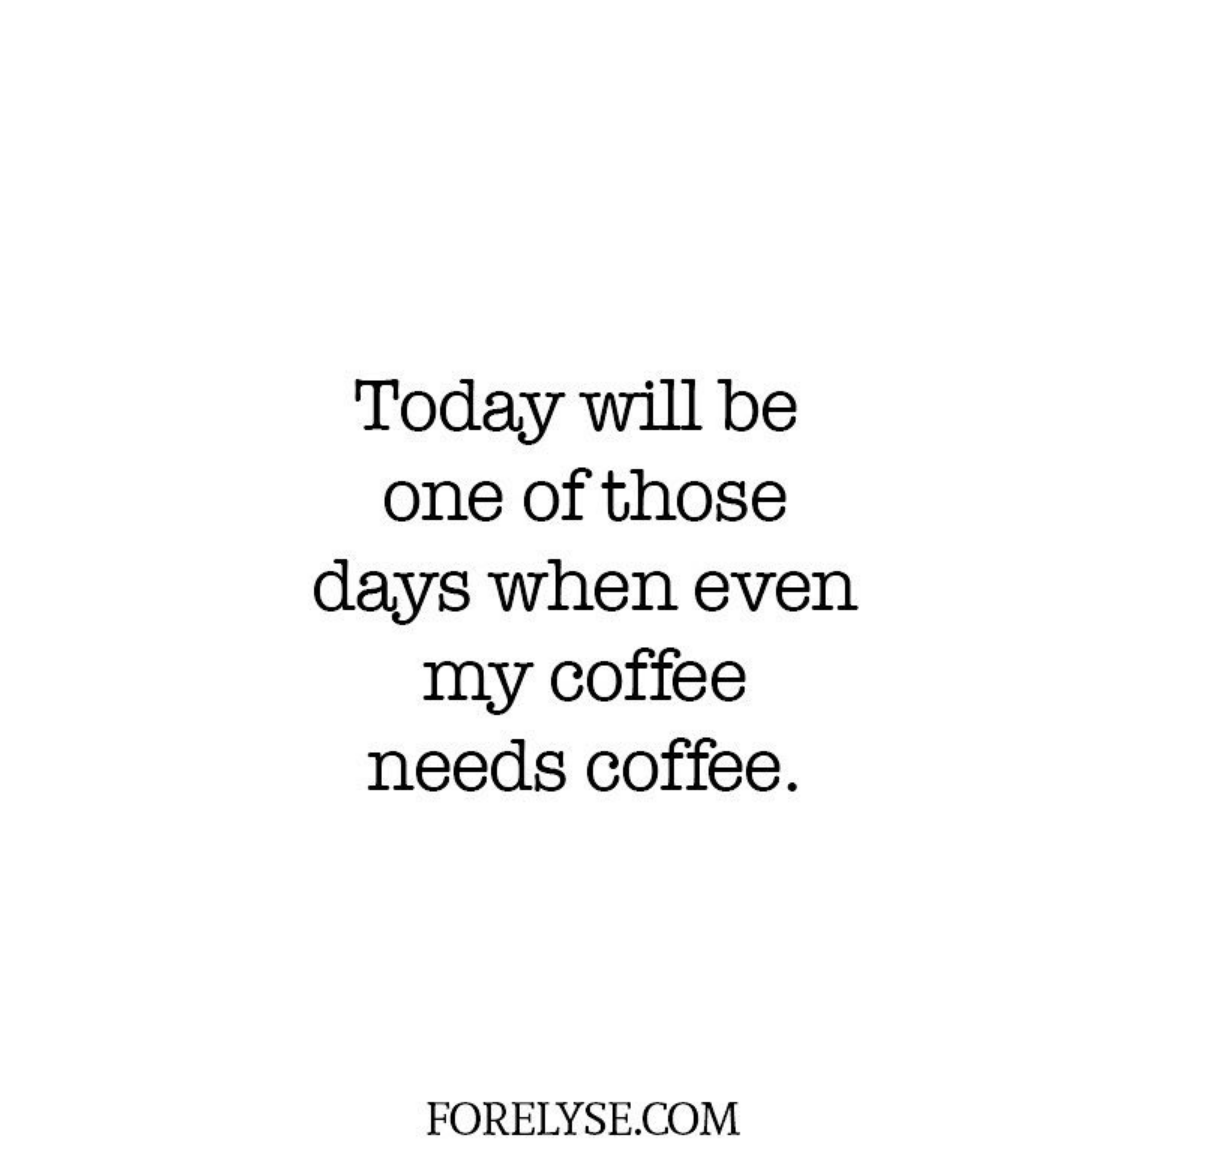 Coffee Quotes Quotes Cute Quotes Funny Quotes Qotd Coffee Drinker Coffee Drinker Quotes Coffee Addict Sil Cute Coffee Quotes Quotes White Silly Quotes